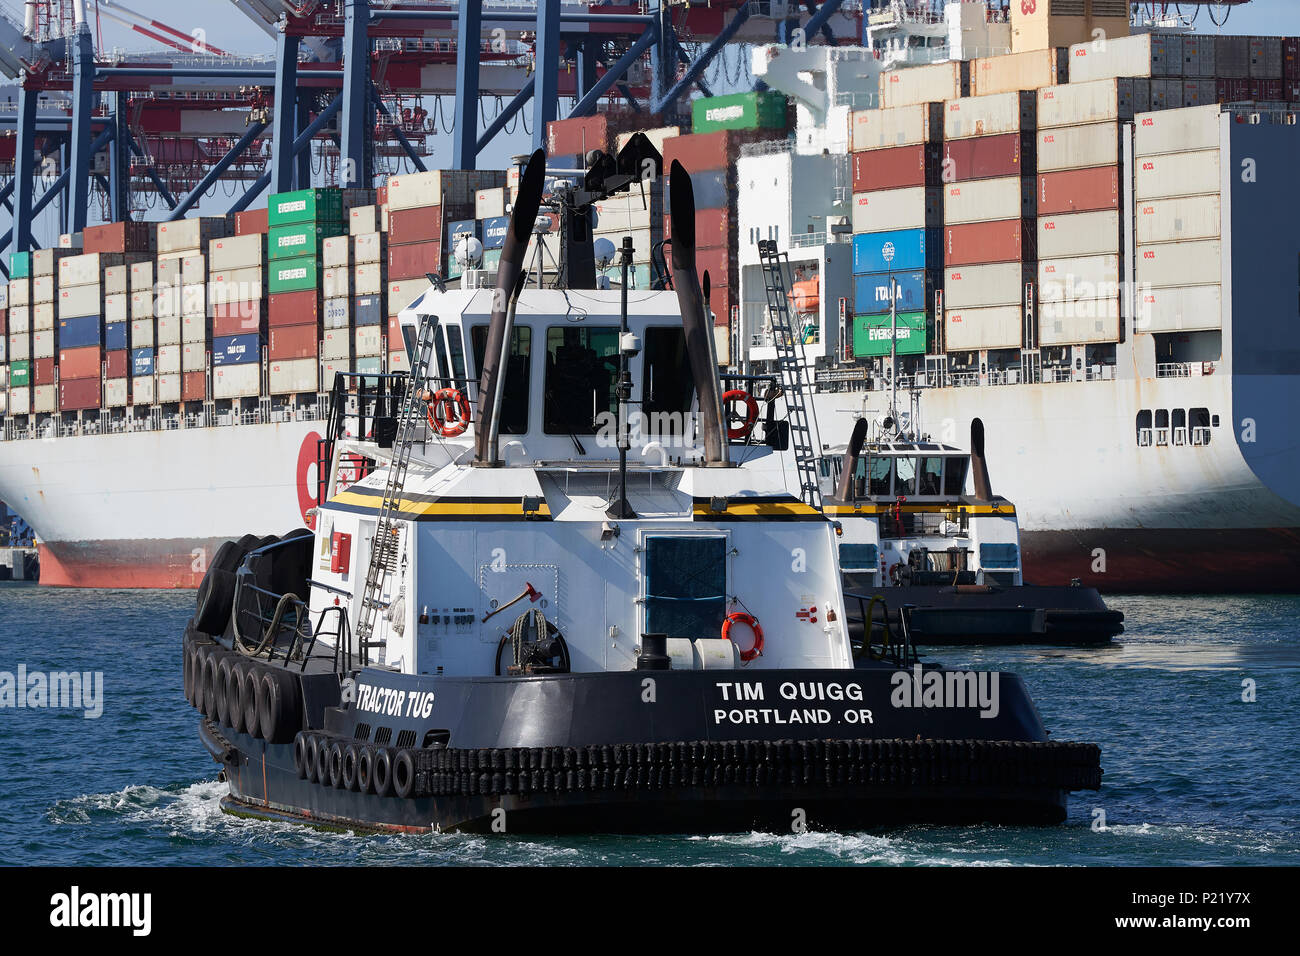 MILLENNIUM MARITIME, Tractor Tug, TIM QUIGG, Approached The OOCL Container Ship OOCL LONDON In The Port Of Long Beach, California, USA. - Stock Image